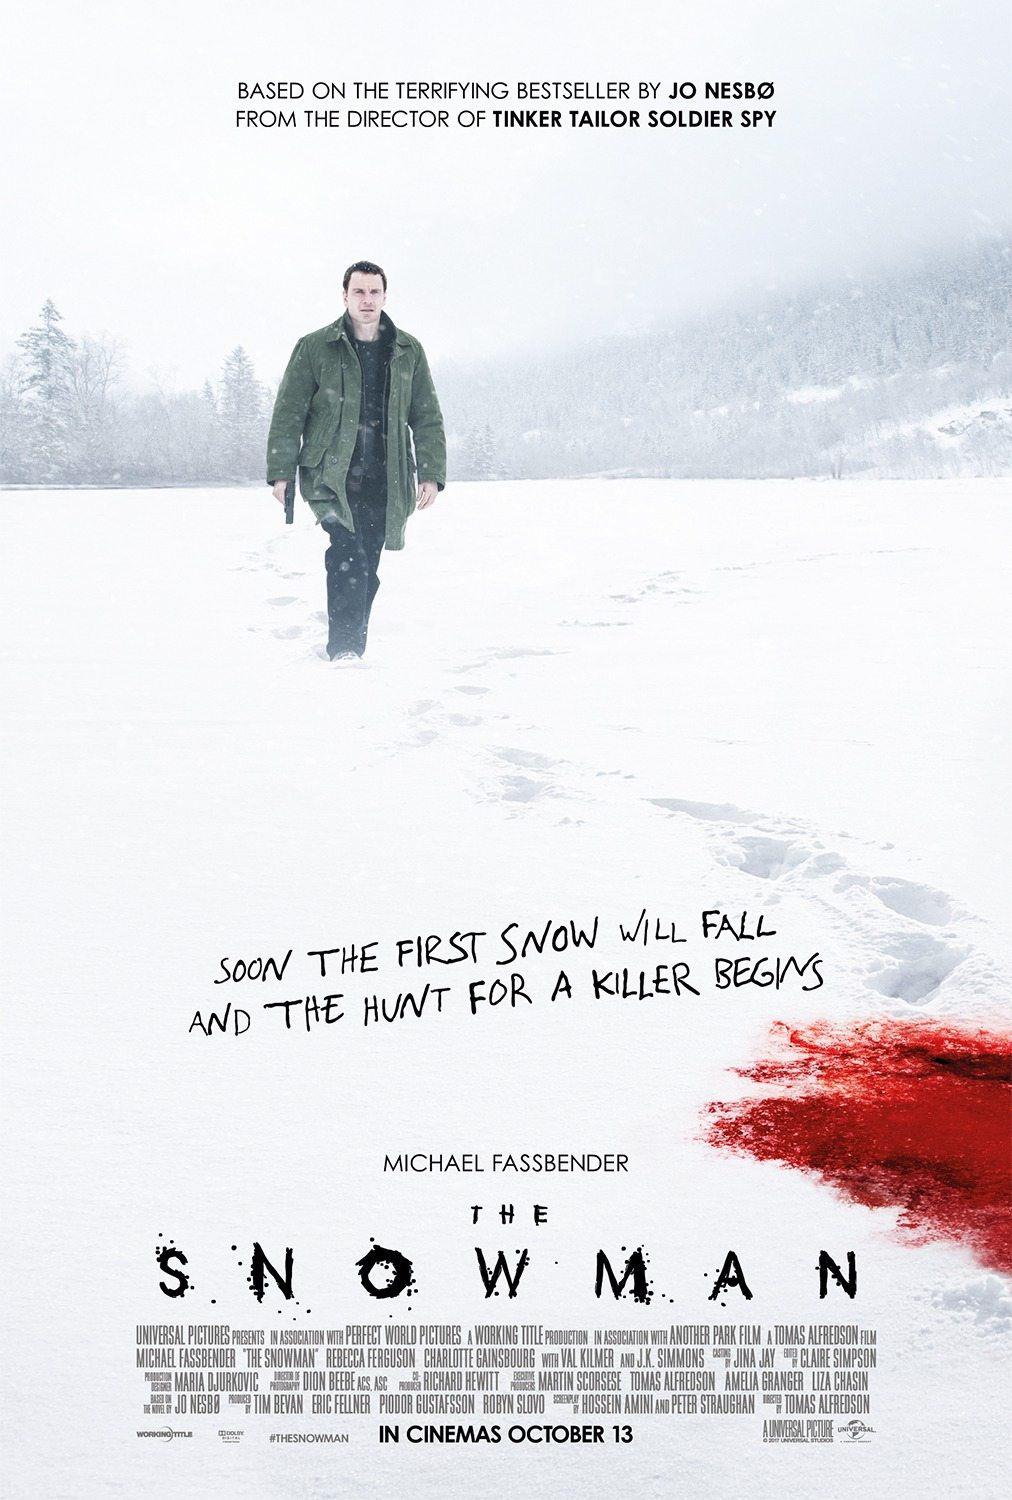 snowman 3 - New Posters for The Snowman Have Some Red on Them